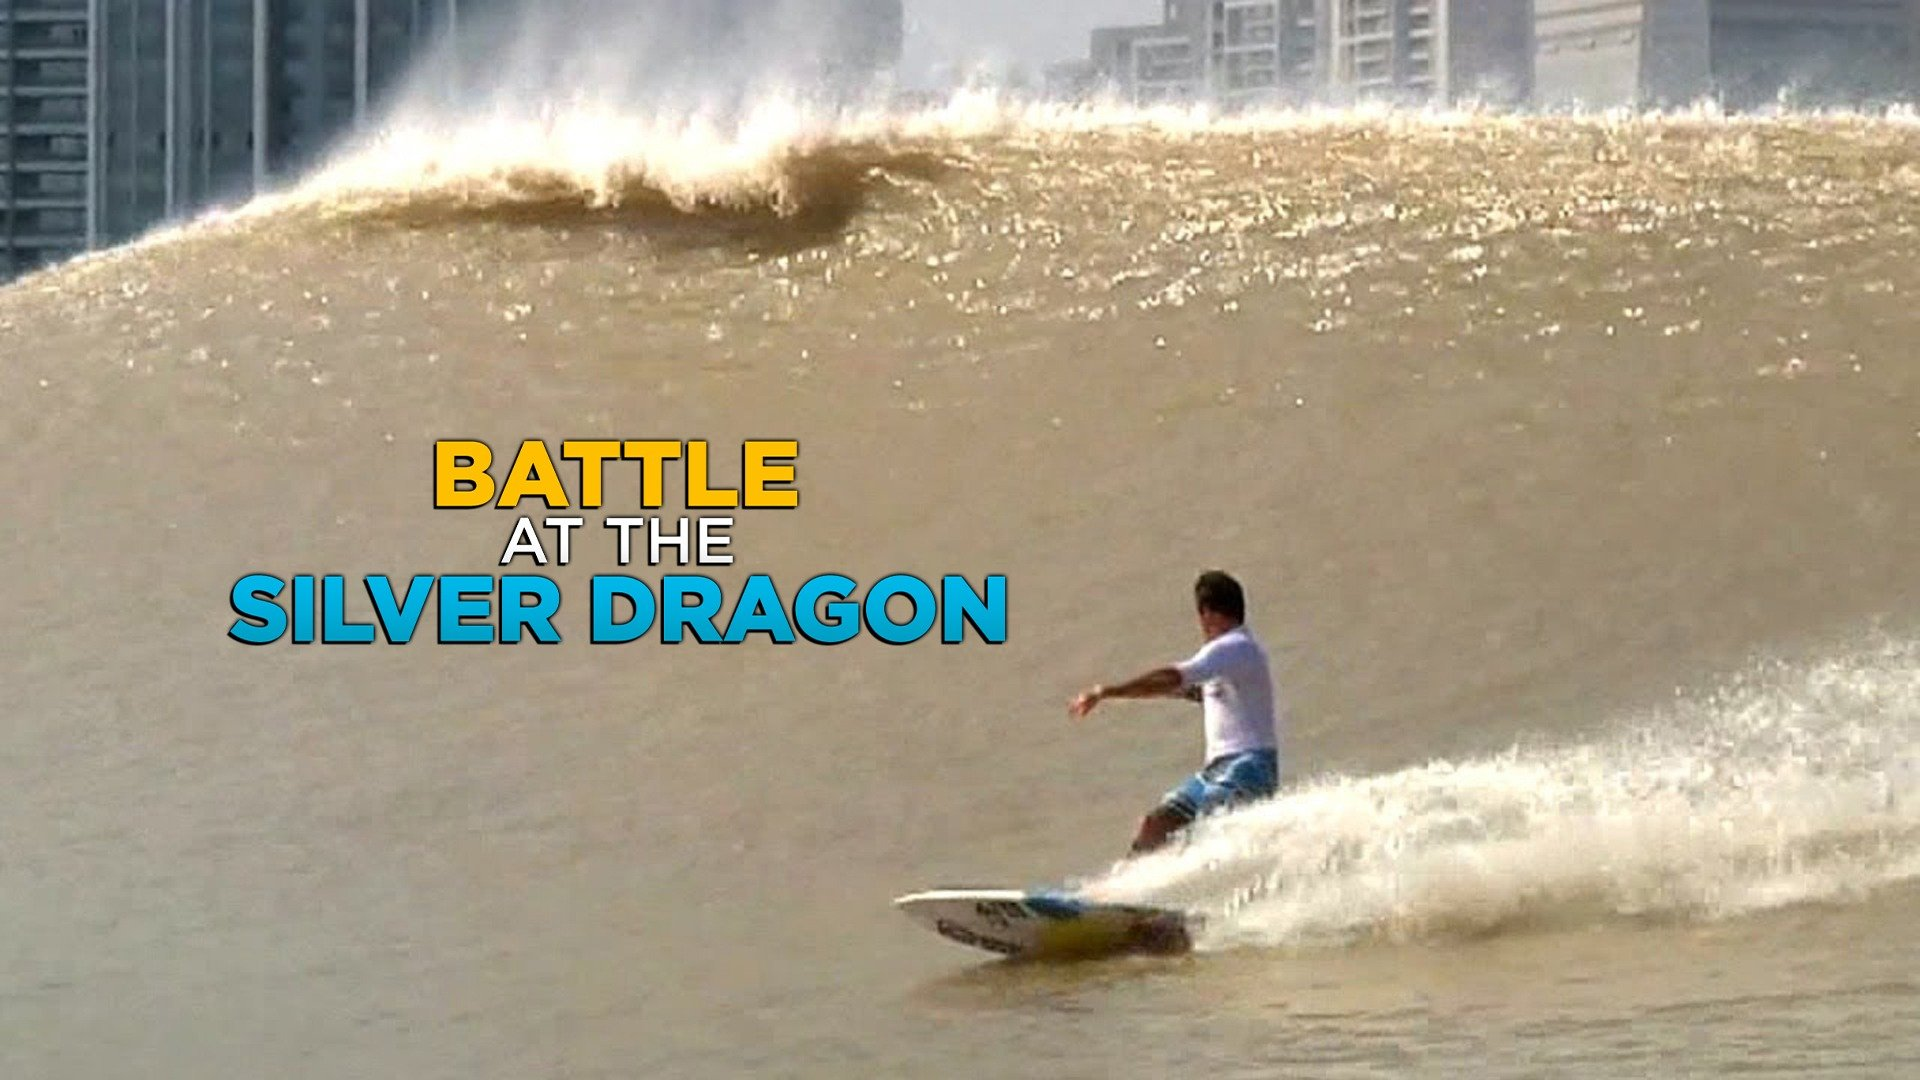 Battle at the Silver Dragon